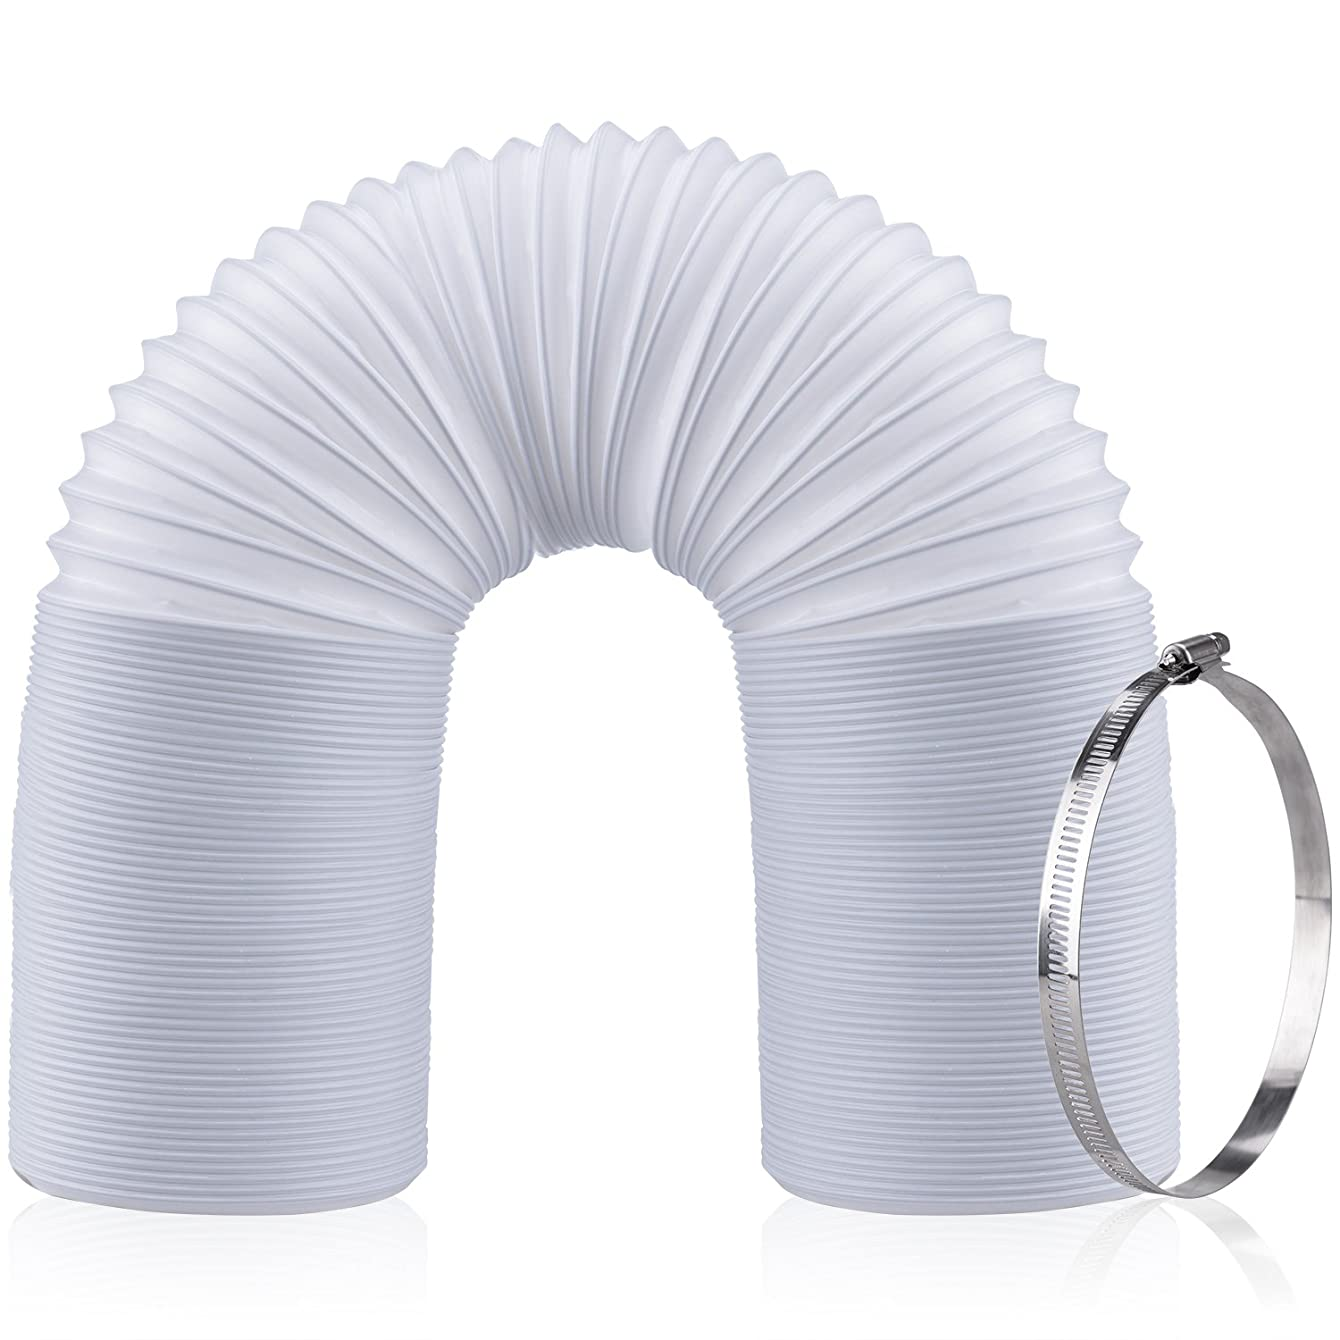 Aboat 5 Inch Diameter Portable Air Conditioner Exhaust Hose (59 Inch Length) with Stainless Steel Tension Clamp